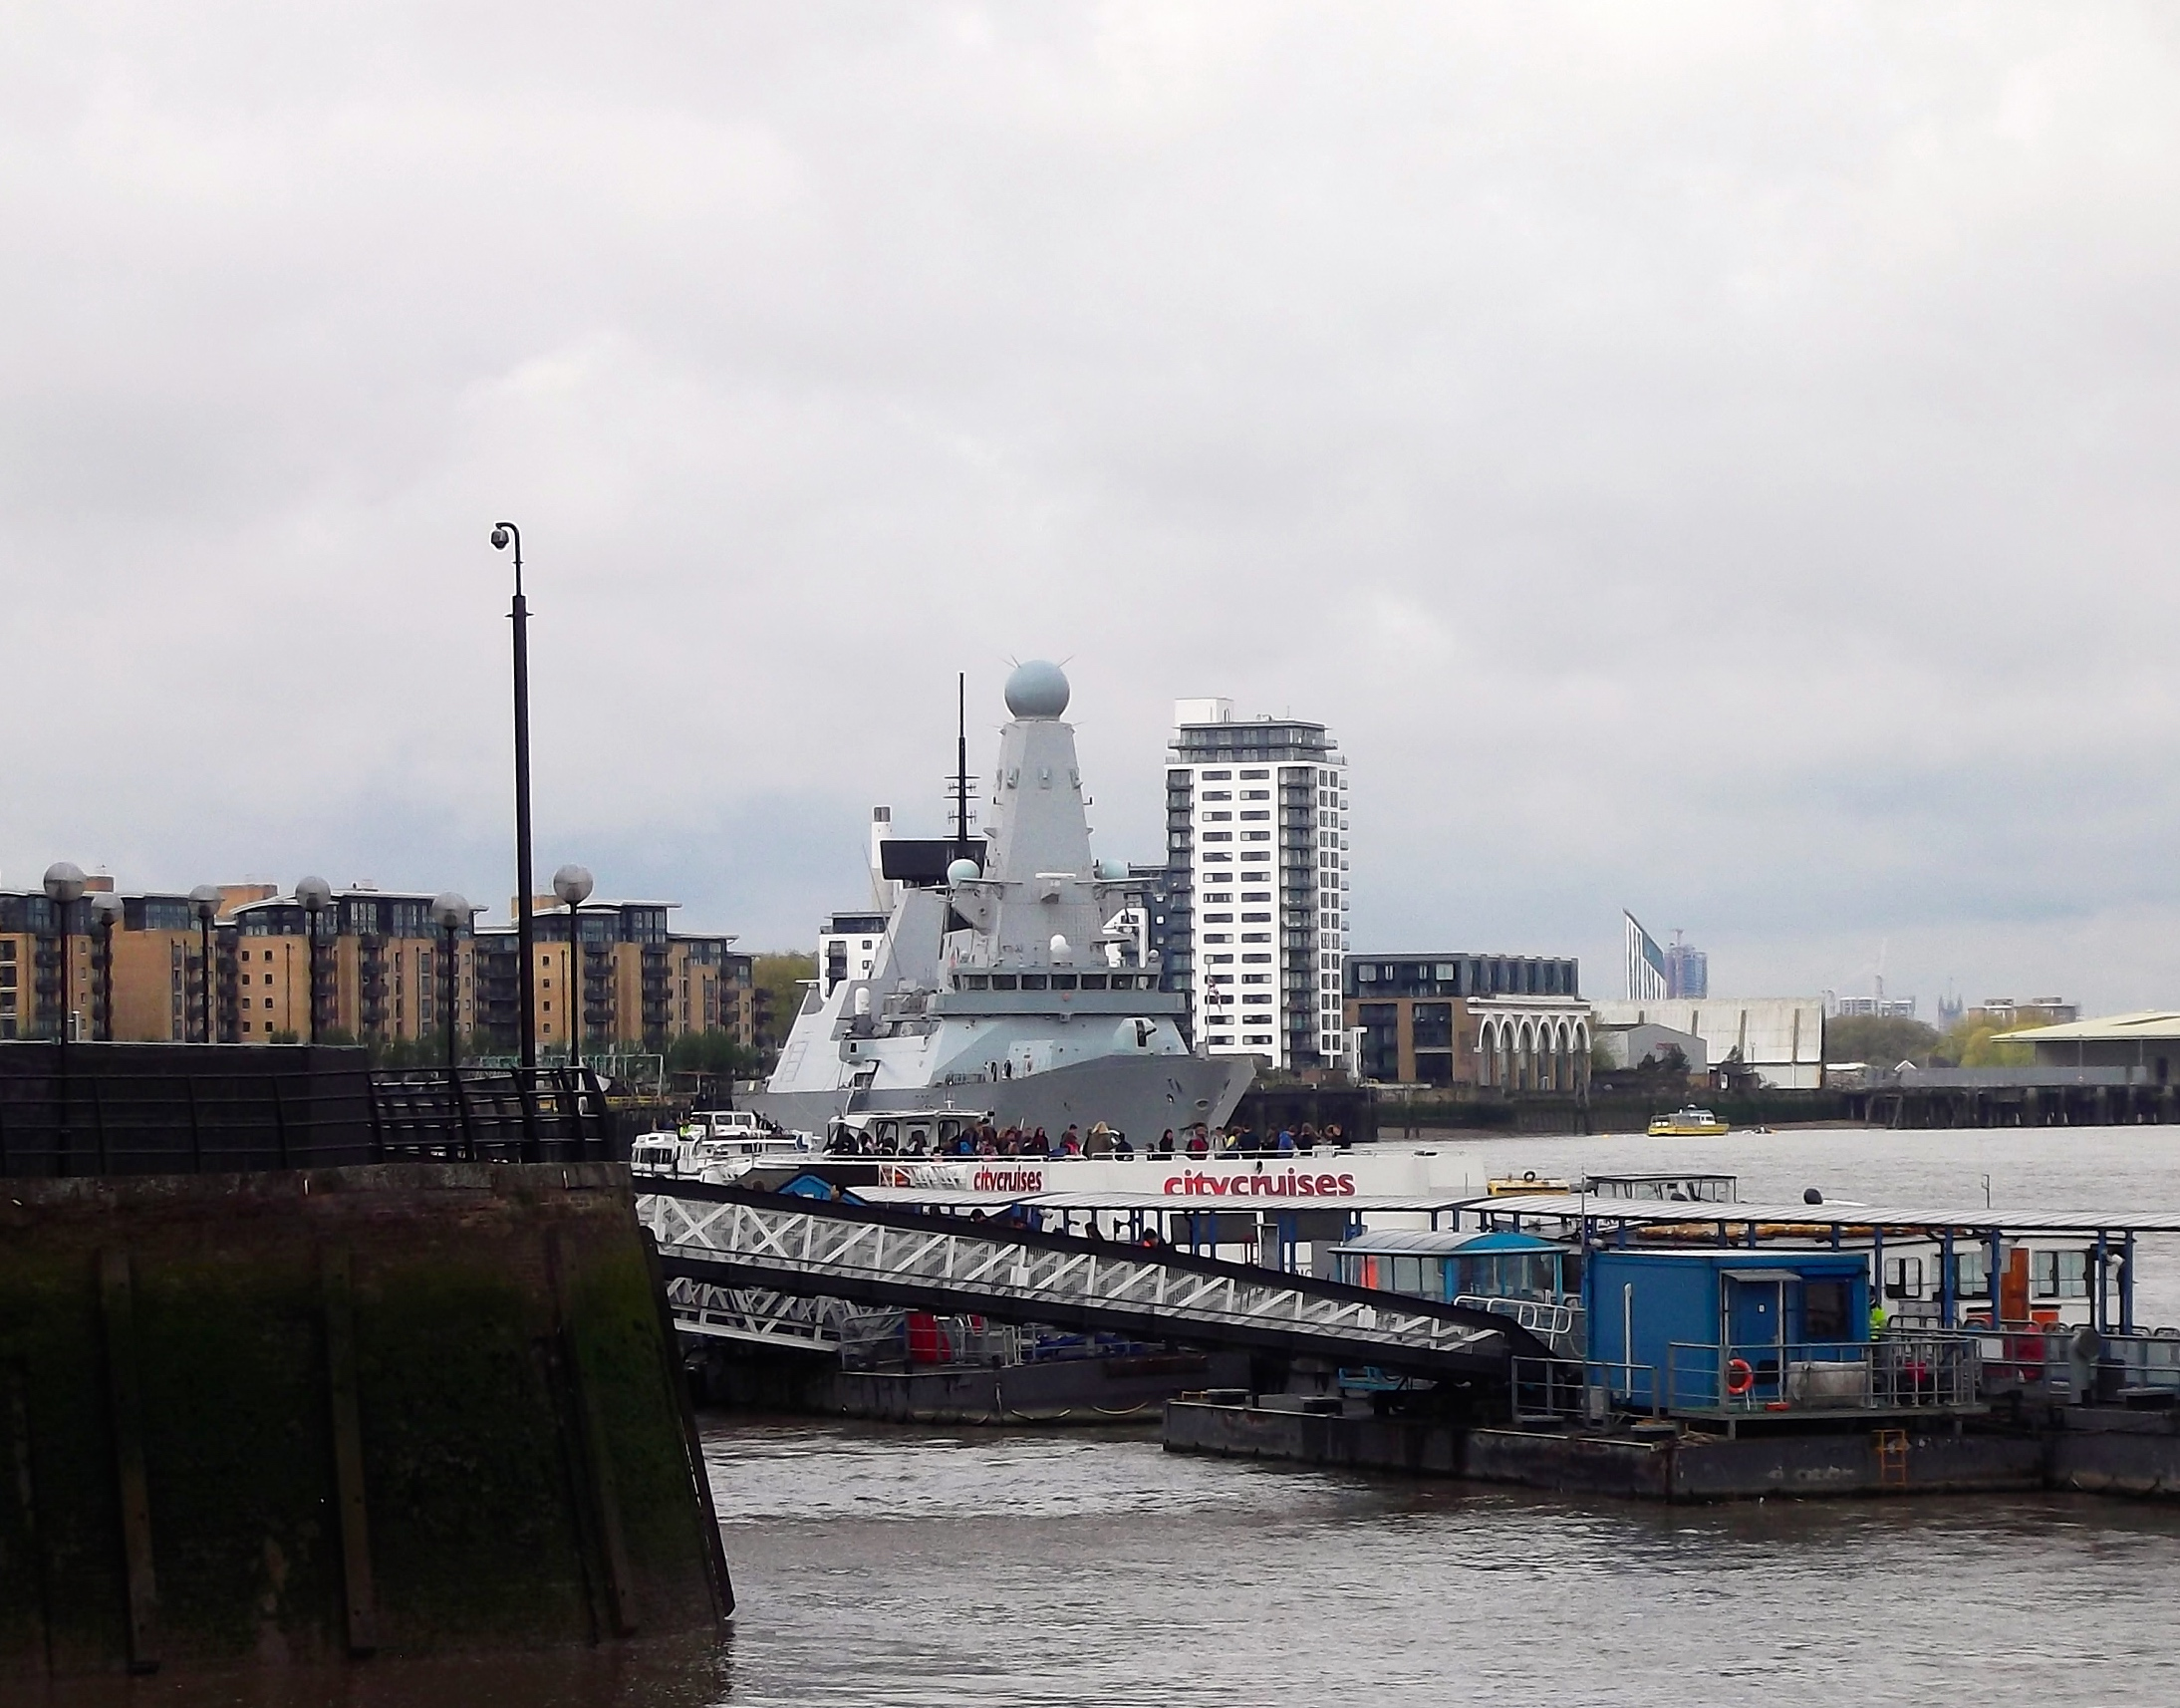 OUR FIRST GLIMPSE OF HMS DEFENDER